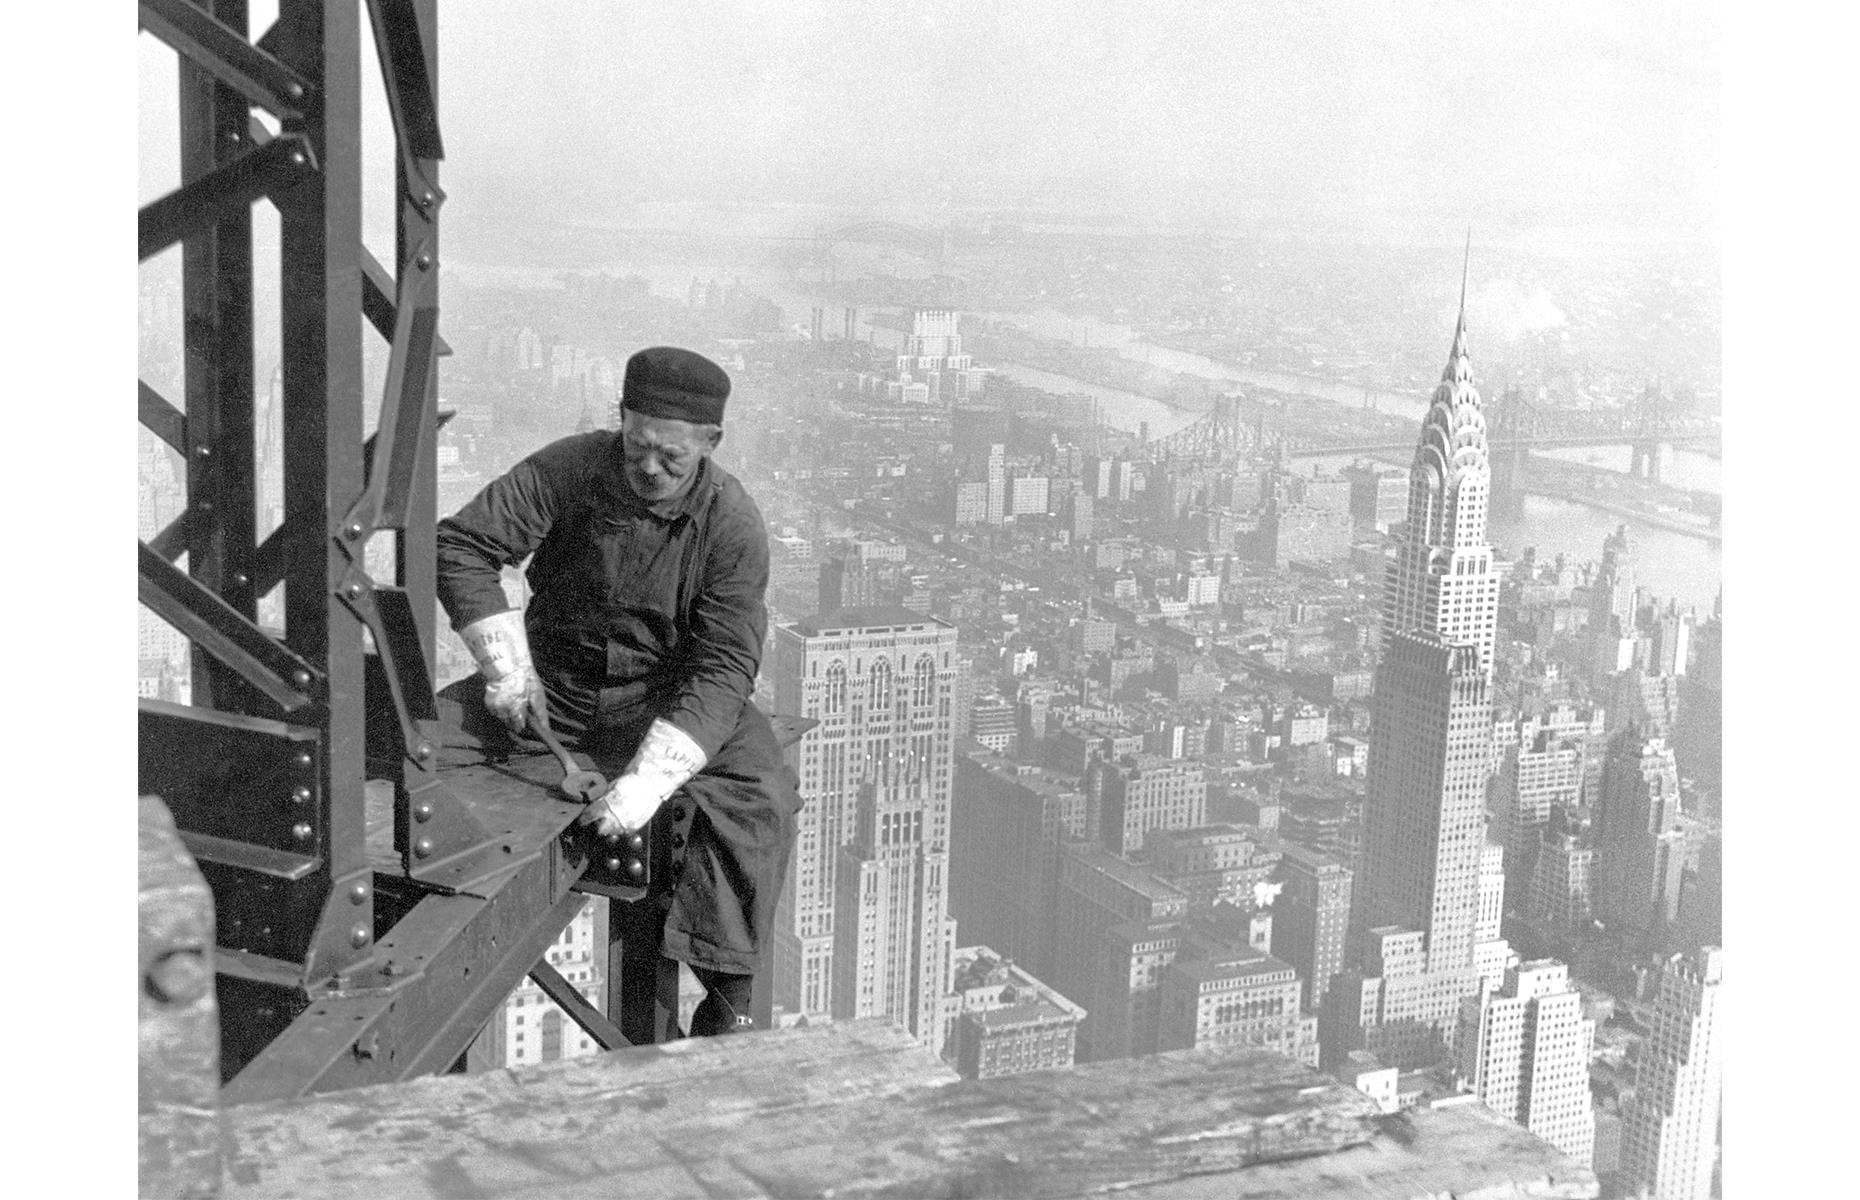 Slide 34 of 41: Held up as an Art Deco icon, New York's Empire State Building (antenna excluded) rises to 1,250 feet (381m) and was the tallest building on the planet upon its completion. Beginning in 1930, its construction involved a whopping 3,000 workers – one of them is pictured bolting metal beams in this 1930 shot.